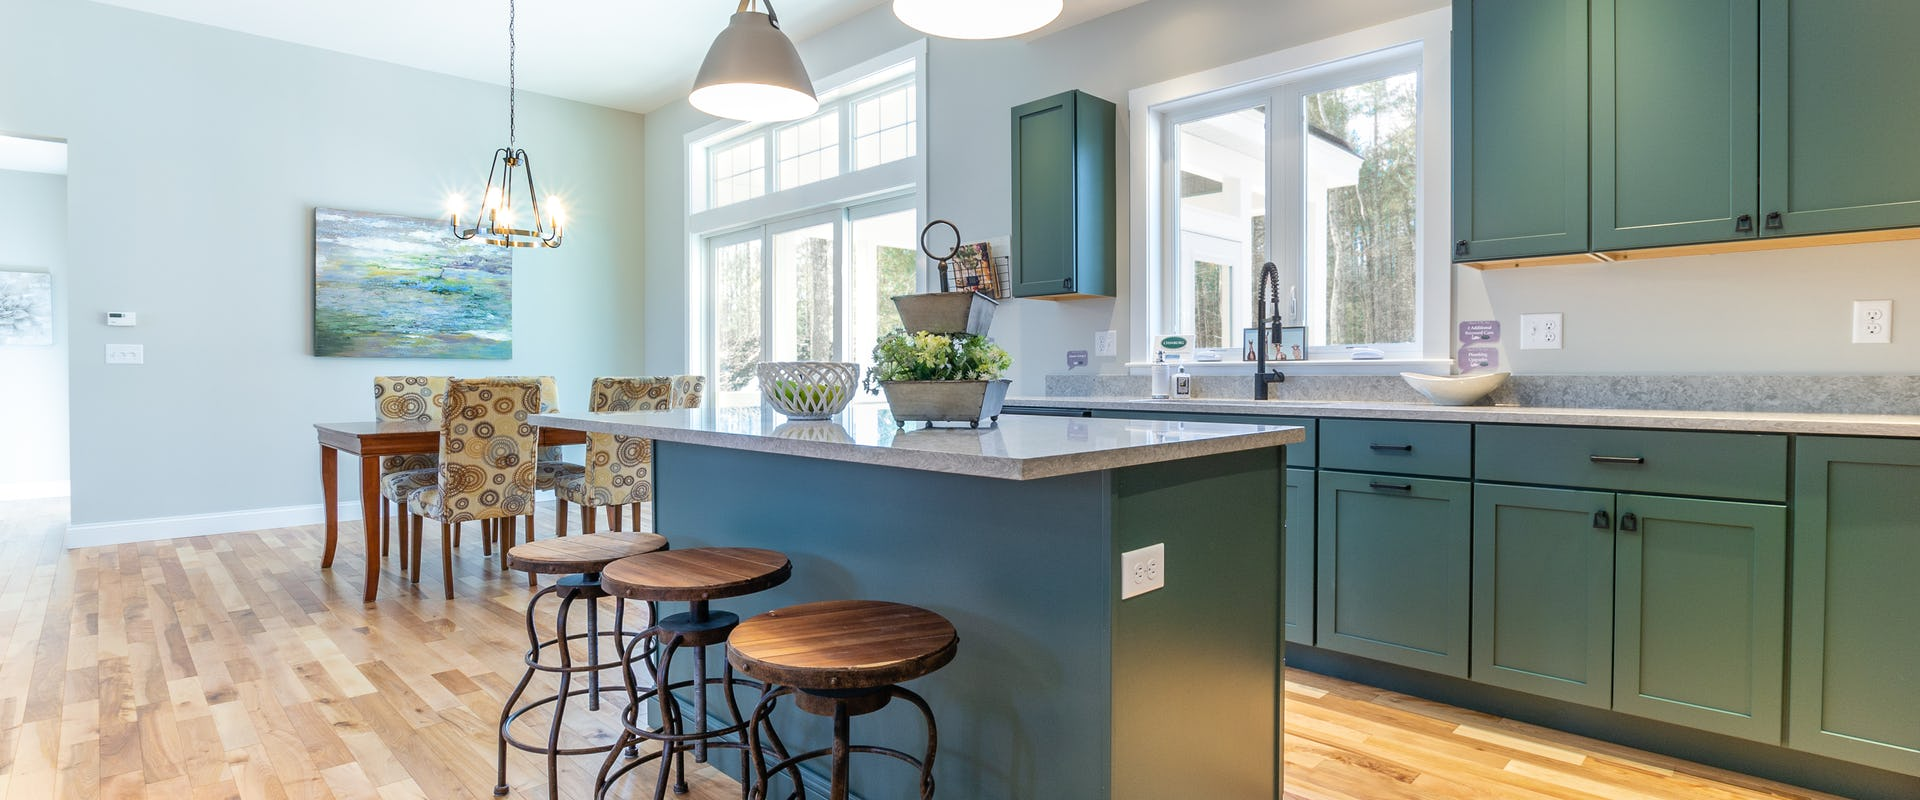 green kitchen cabinets in new home